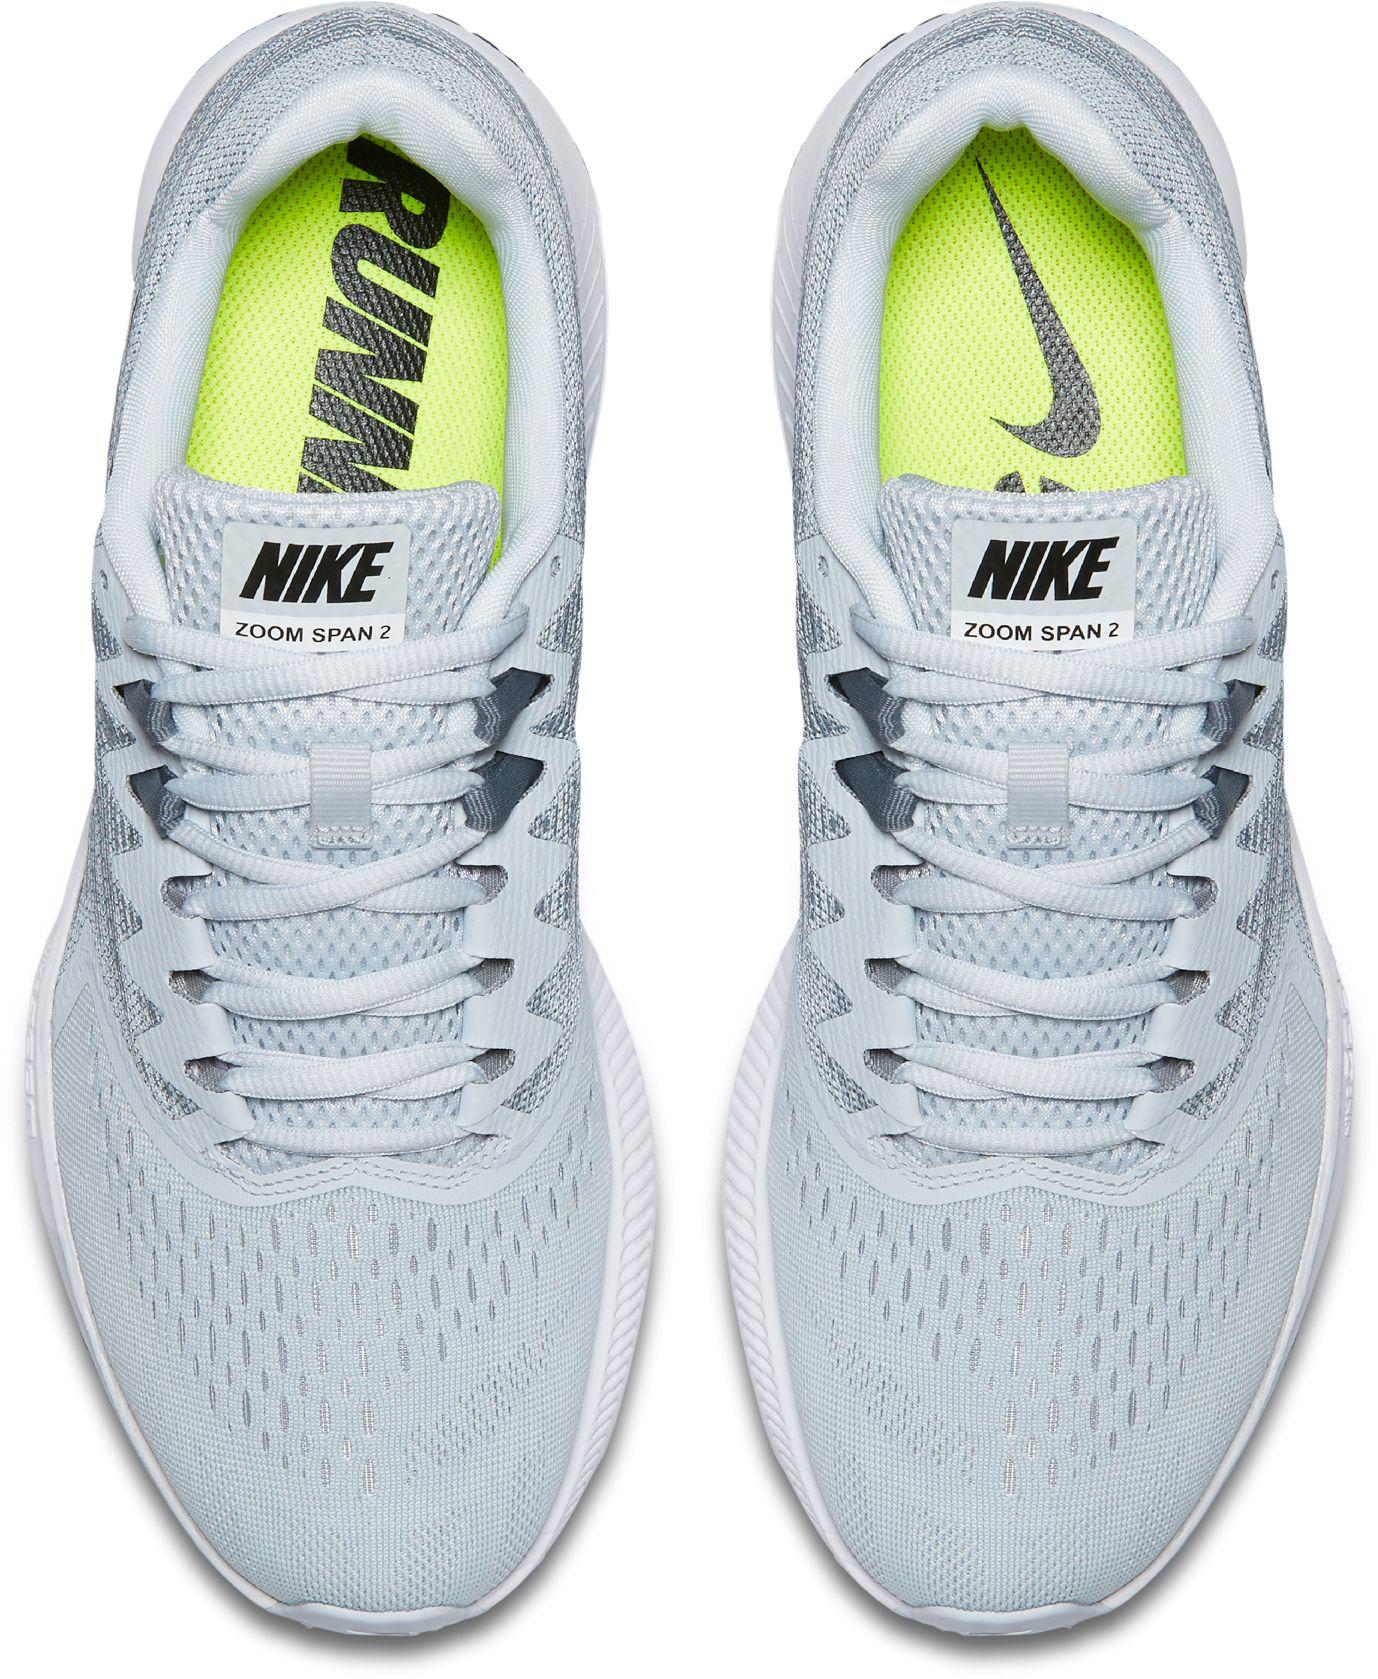 dfdd89f2dd5 Lyst - Nike Air Zoom Span 2 Running Shoes in Metallic for Men